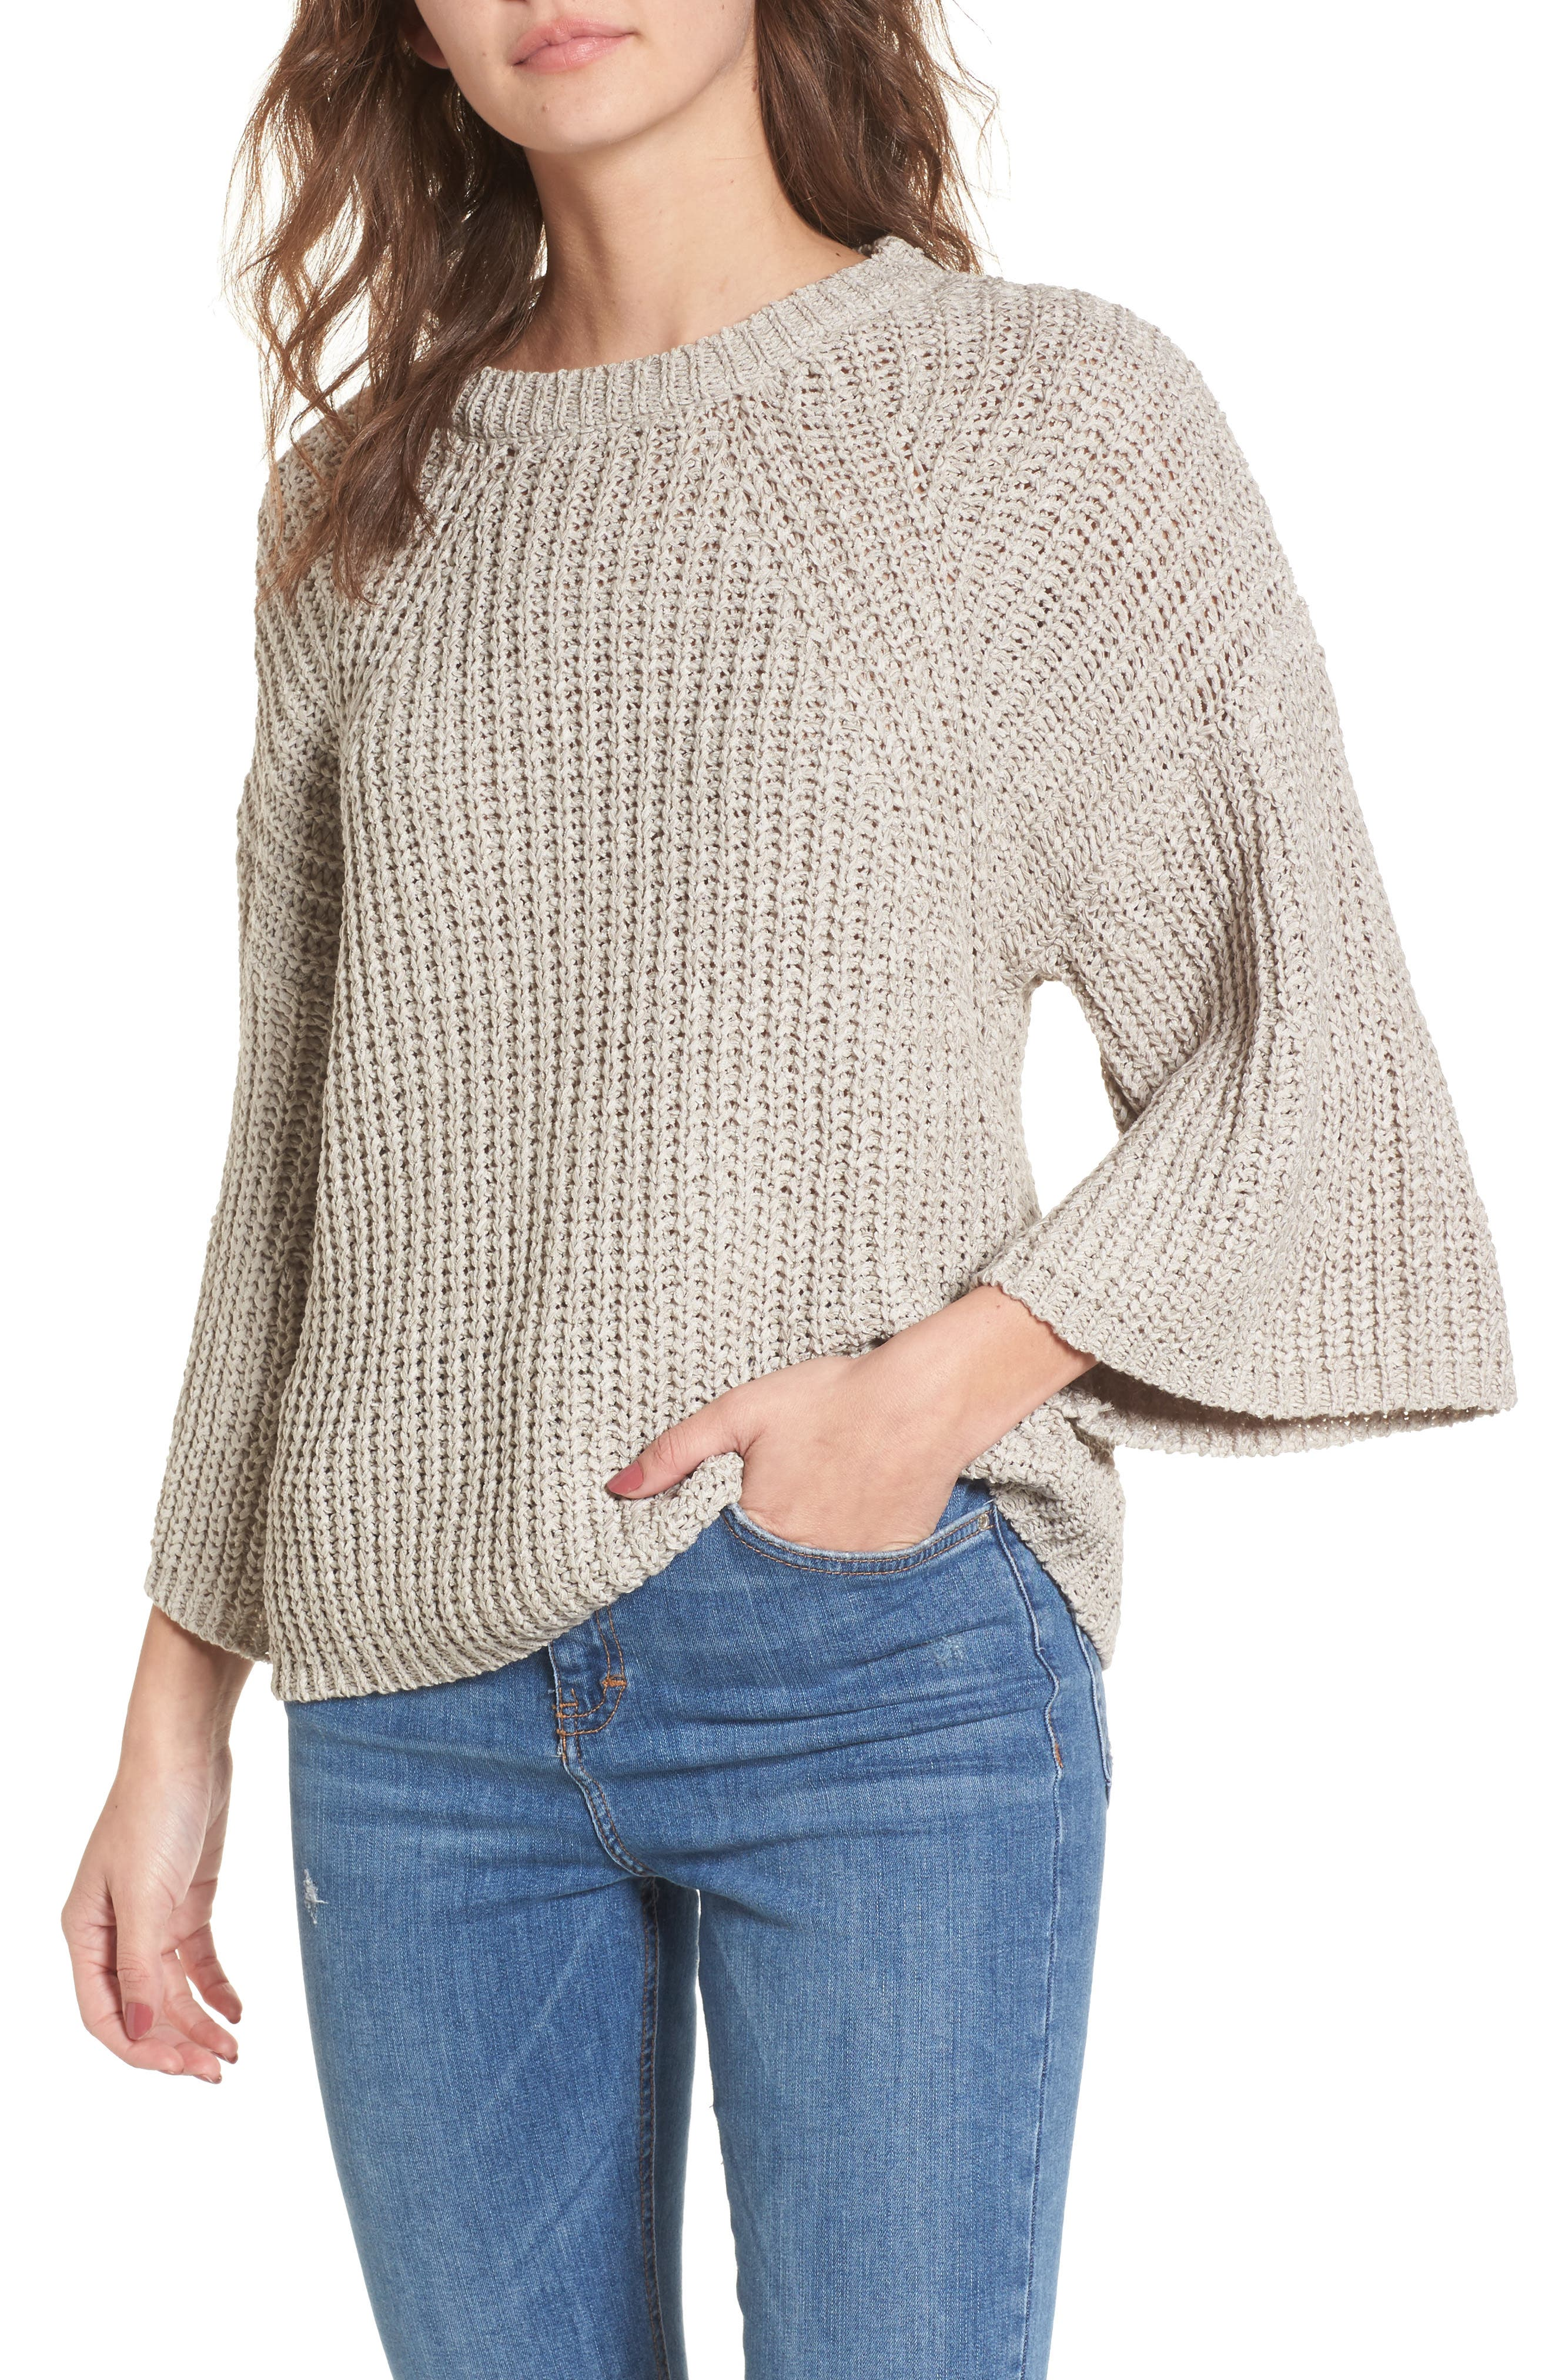 Bell Sleeve Sweater,                             Main thumbnail 1, color,                             280